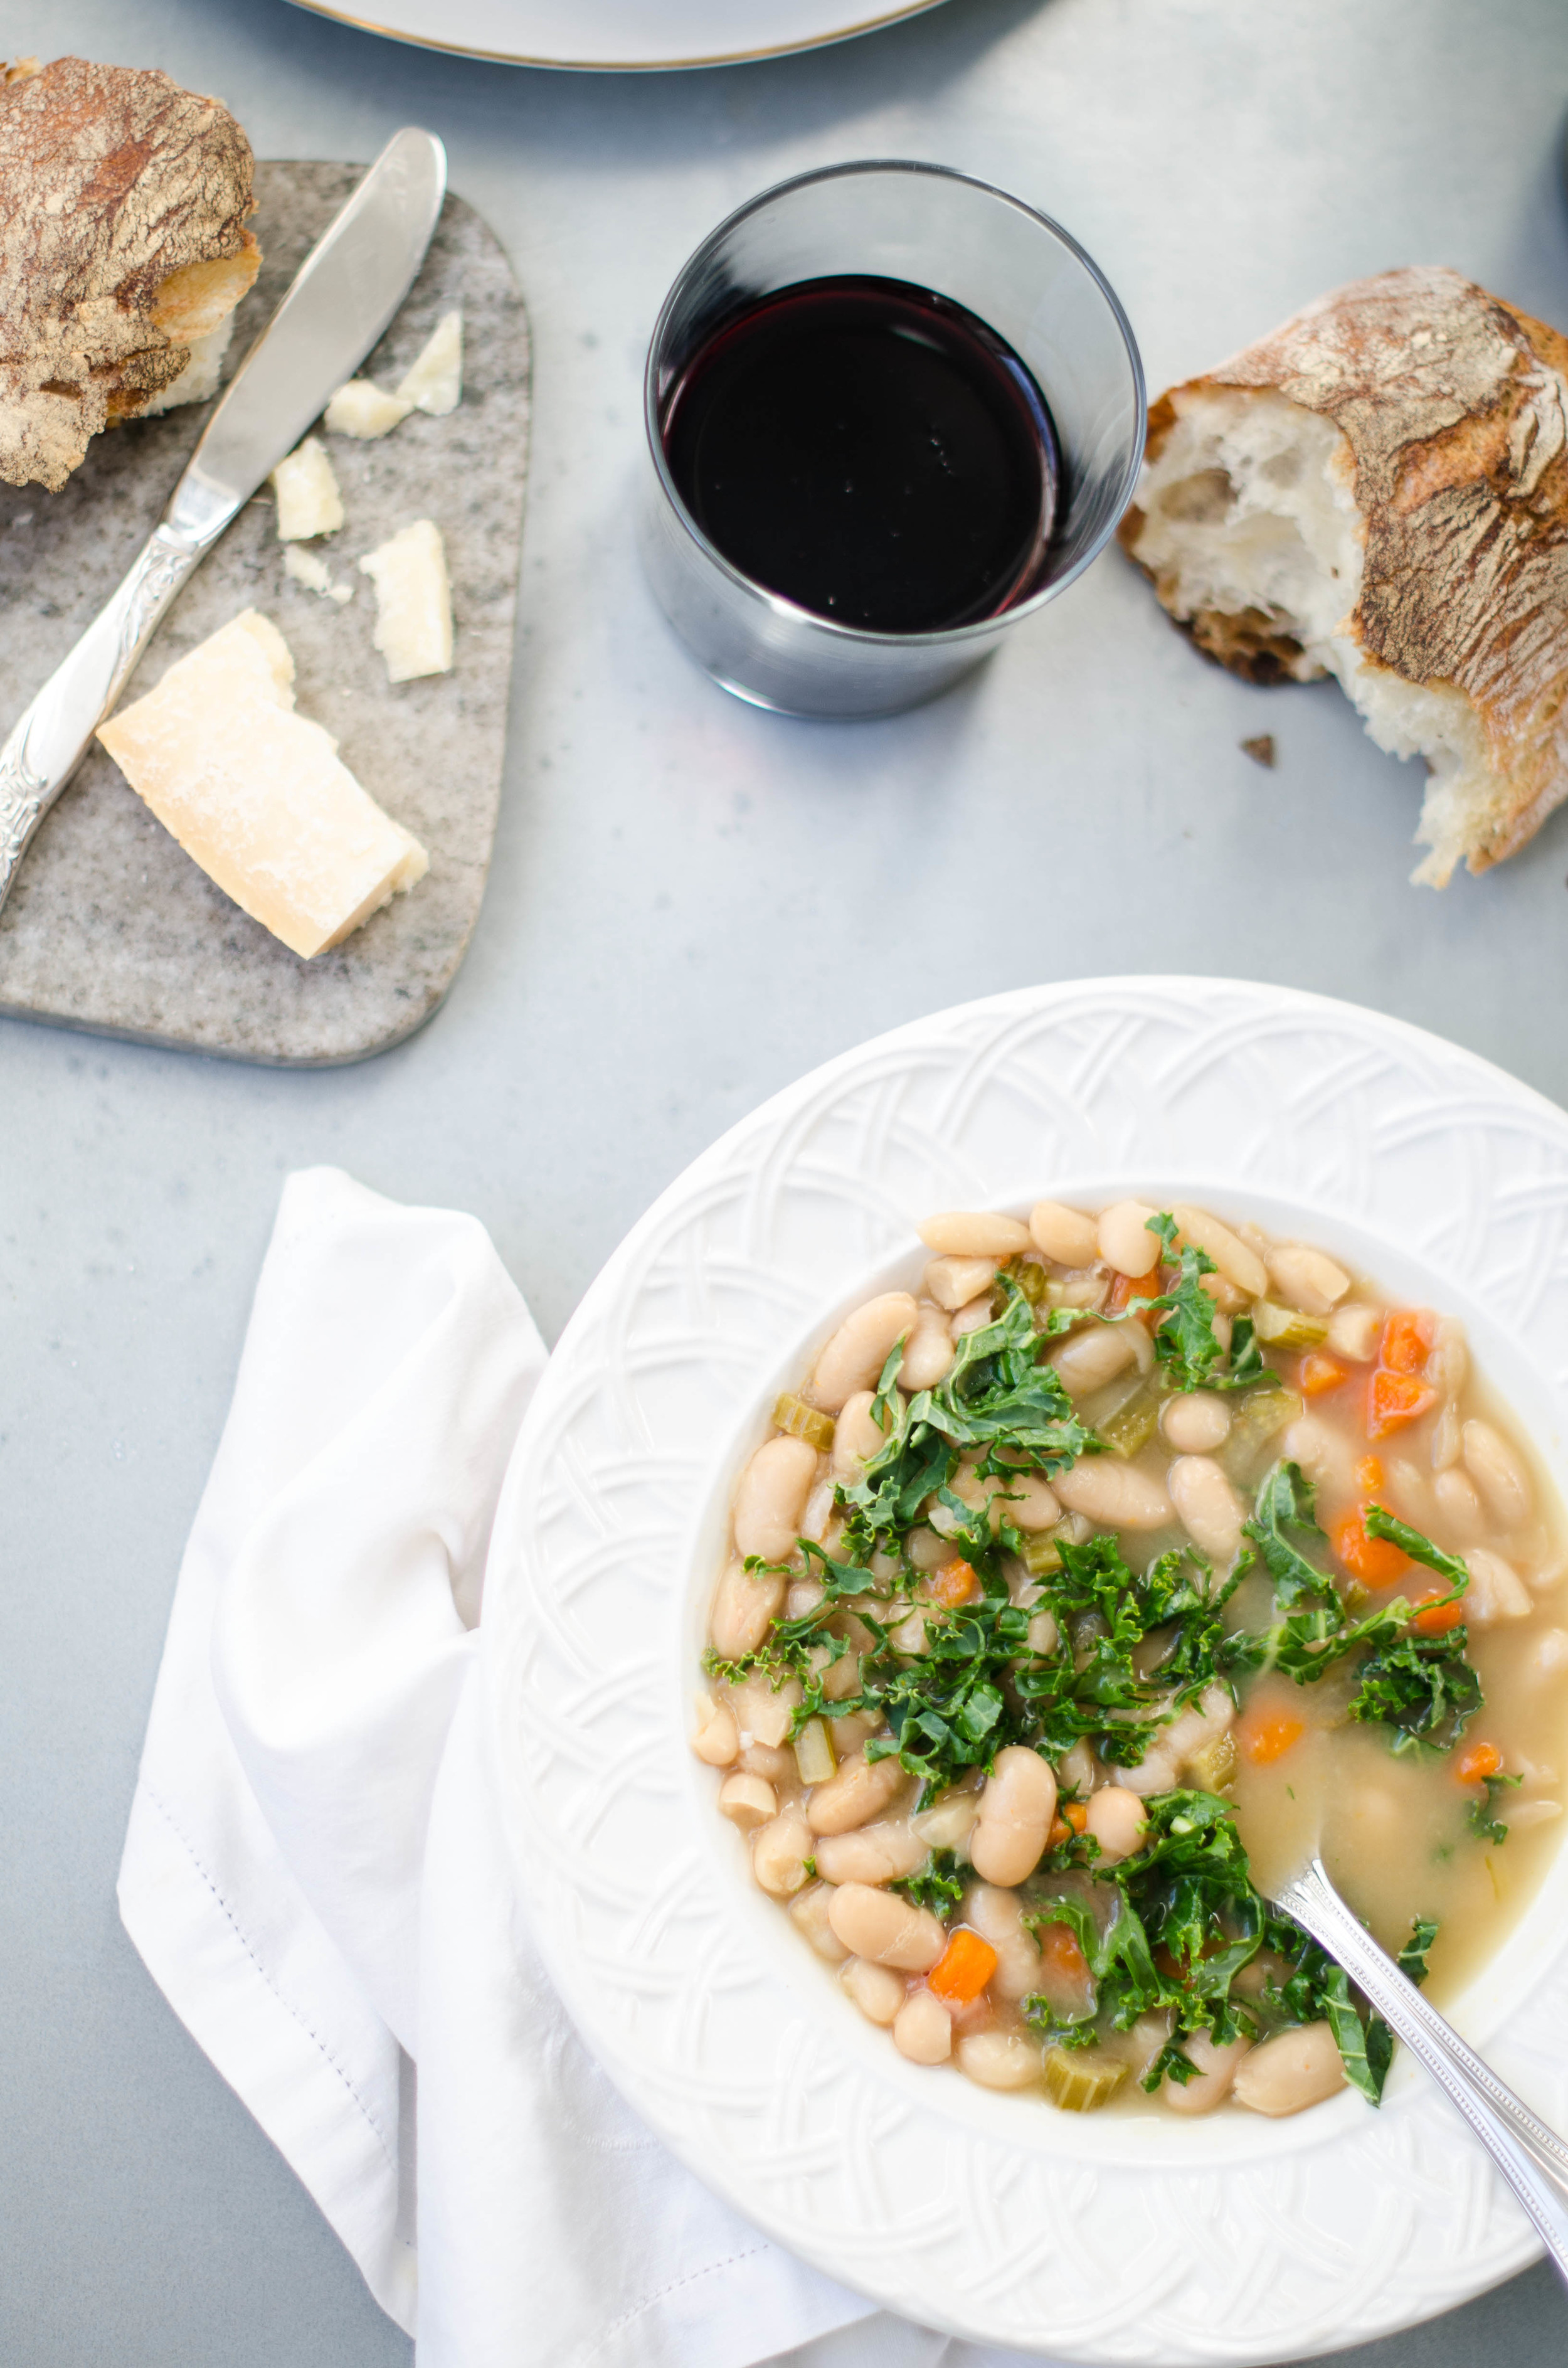 ROSE & IVY JOURNAL WINTER 2015 WHITE BEAN AND KALE SOUP